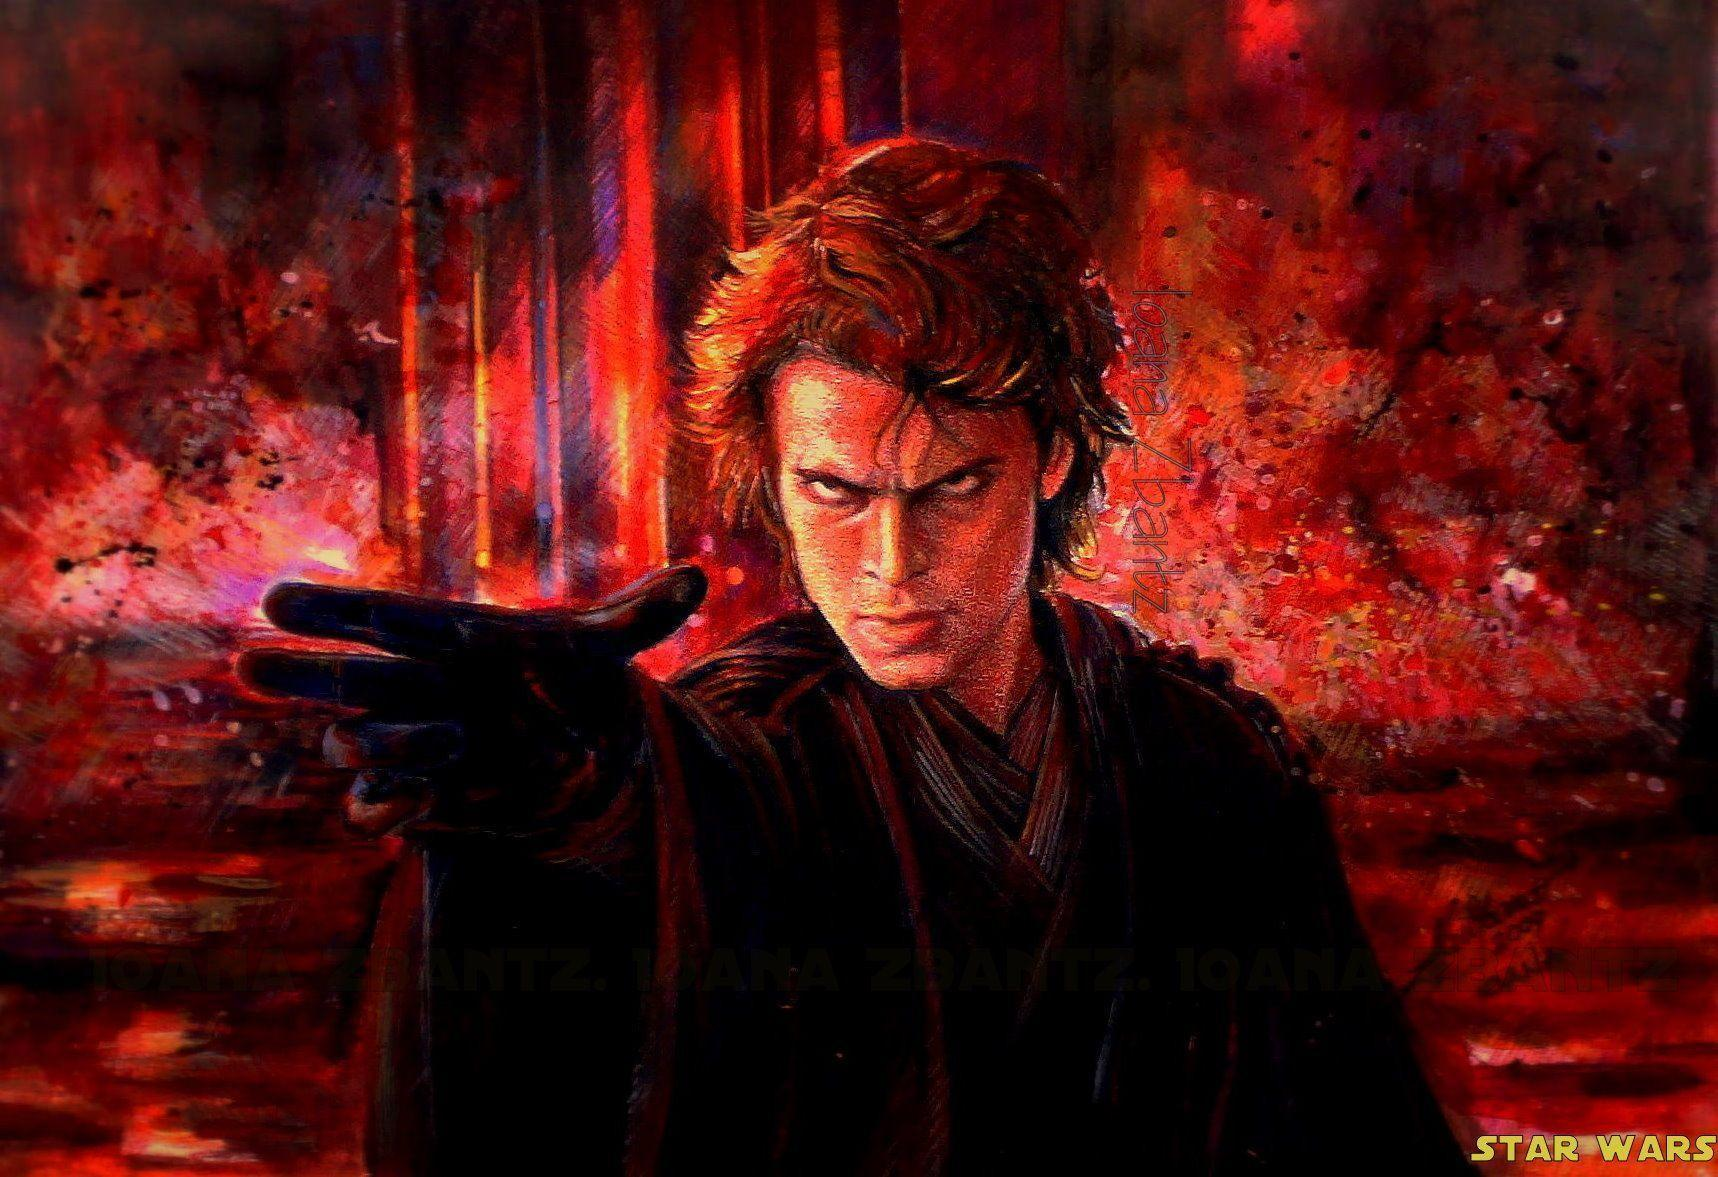 Star Wars Wallpapers Anakin Skywalker HD Wallpapers Pictures